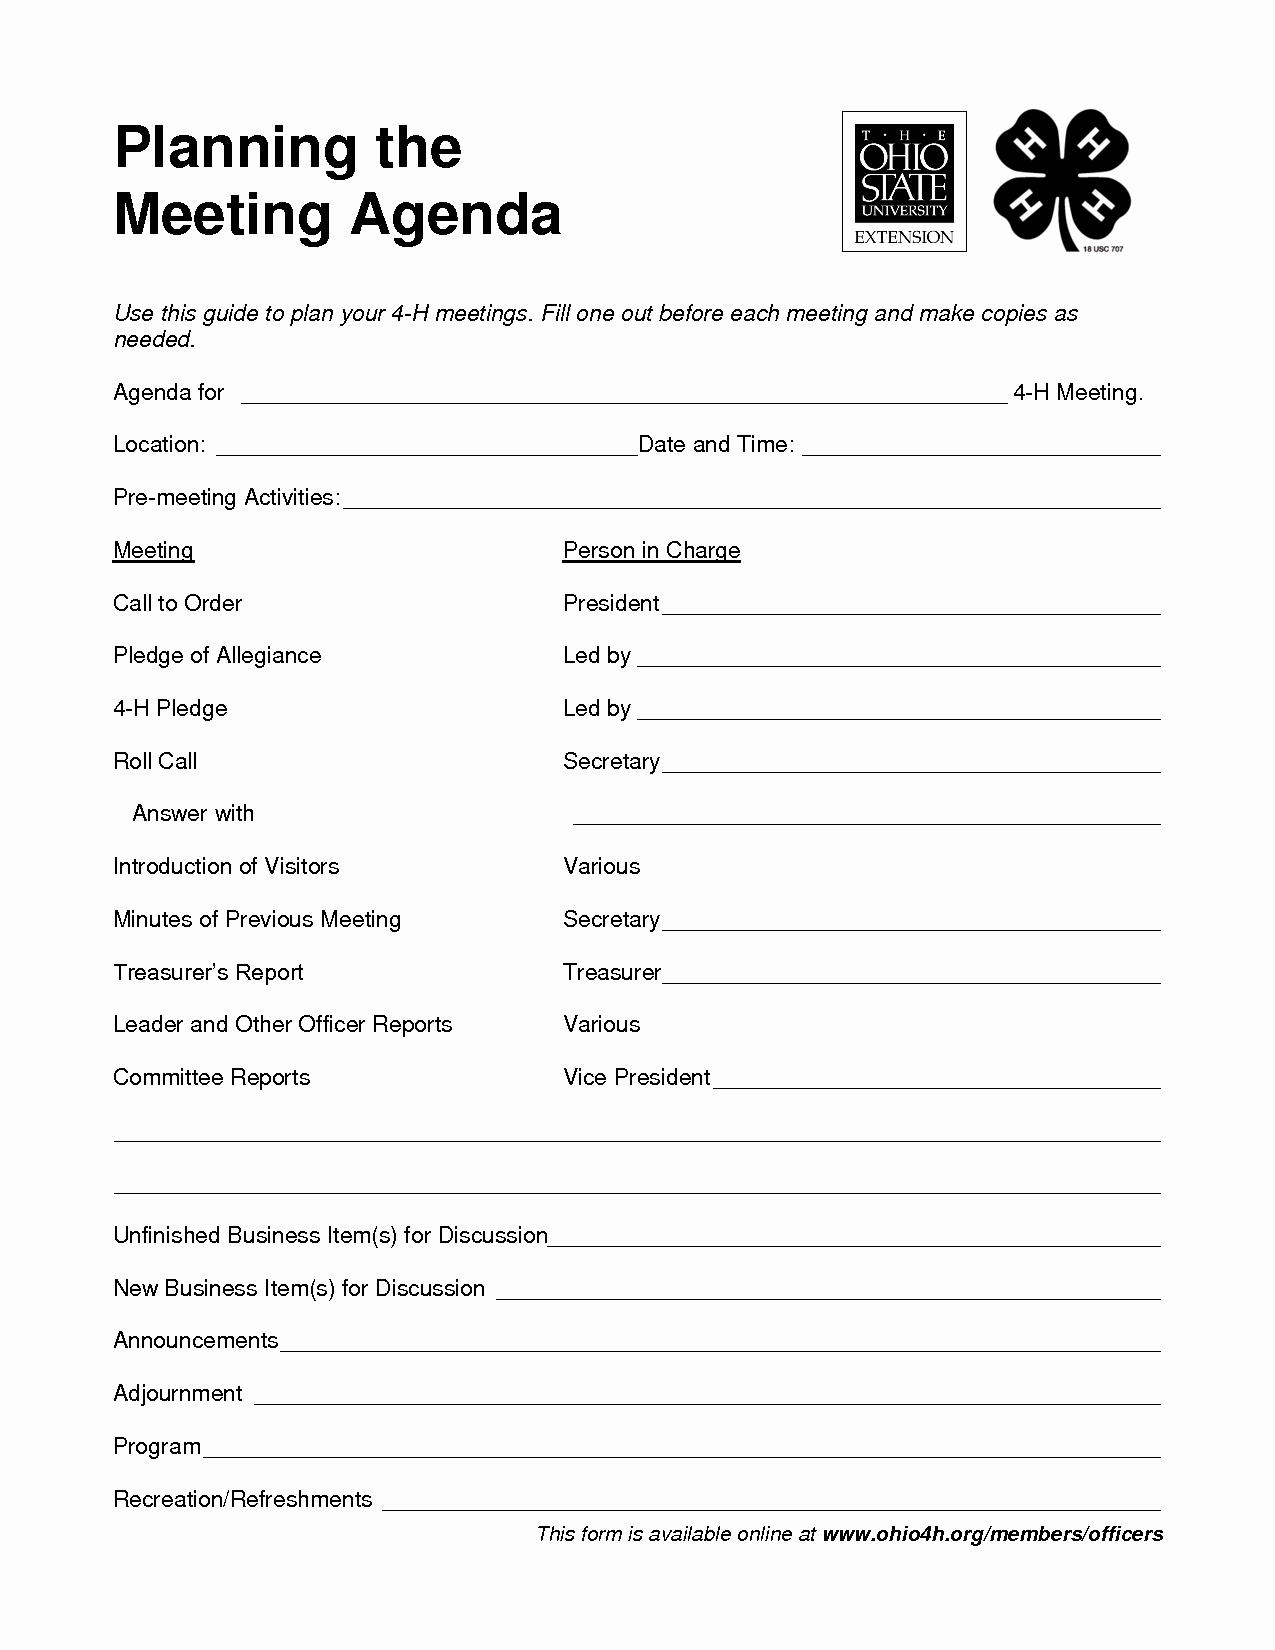 Fun Meeting Agenda Template Inspirational 4 H Meeting Agenda Template Google Search